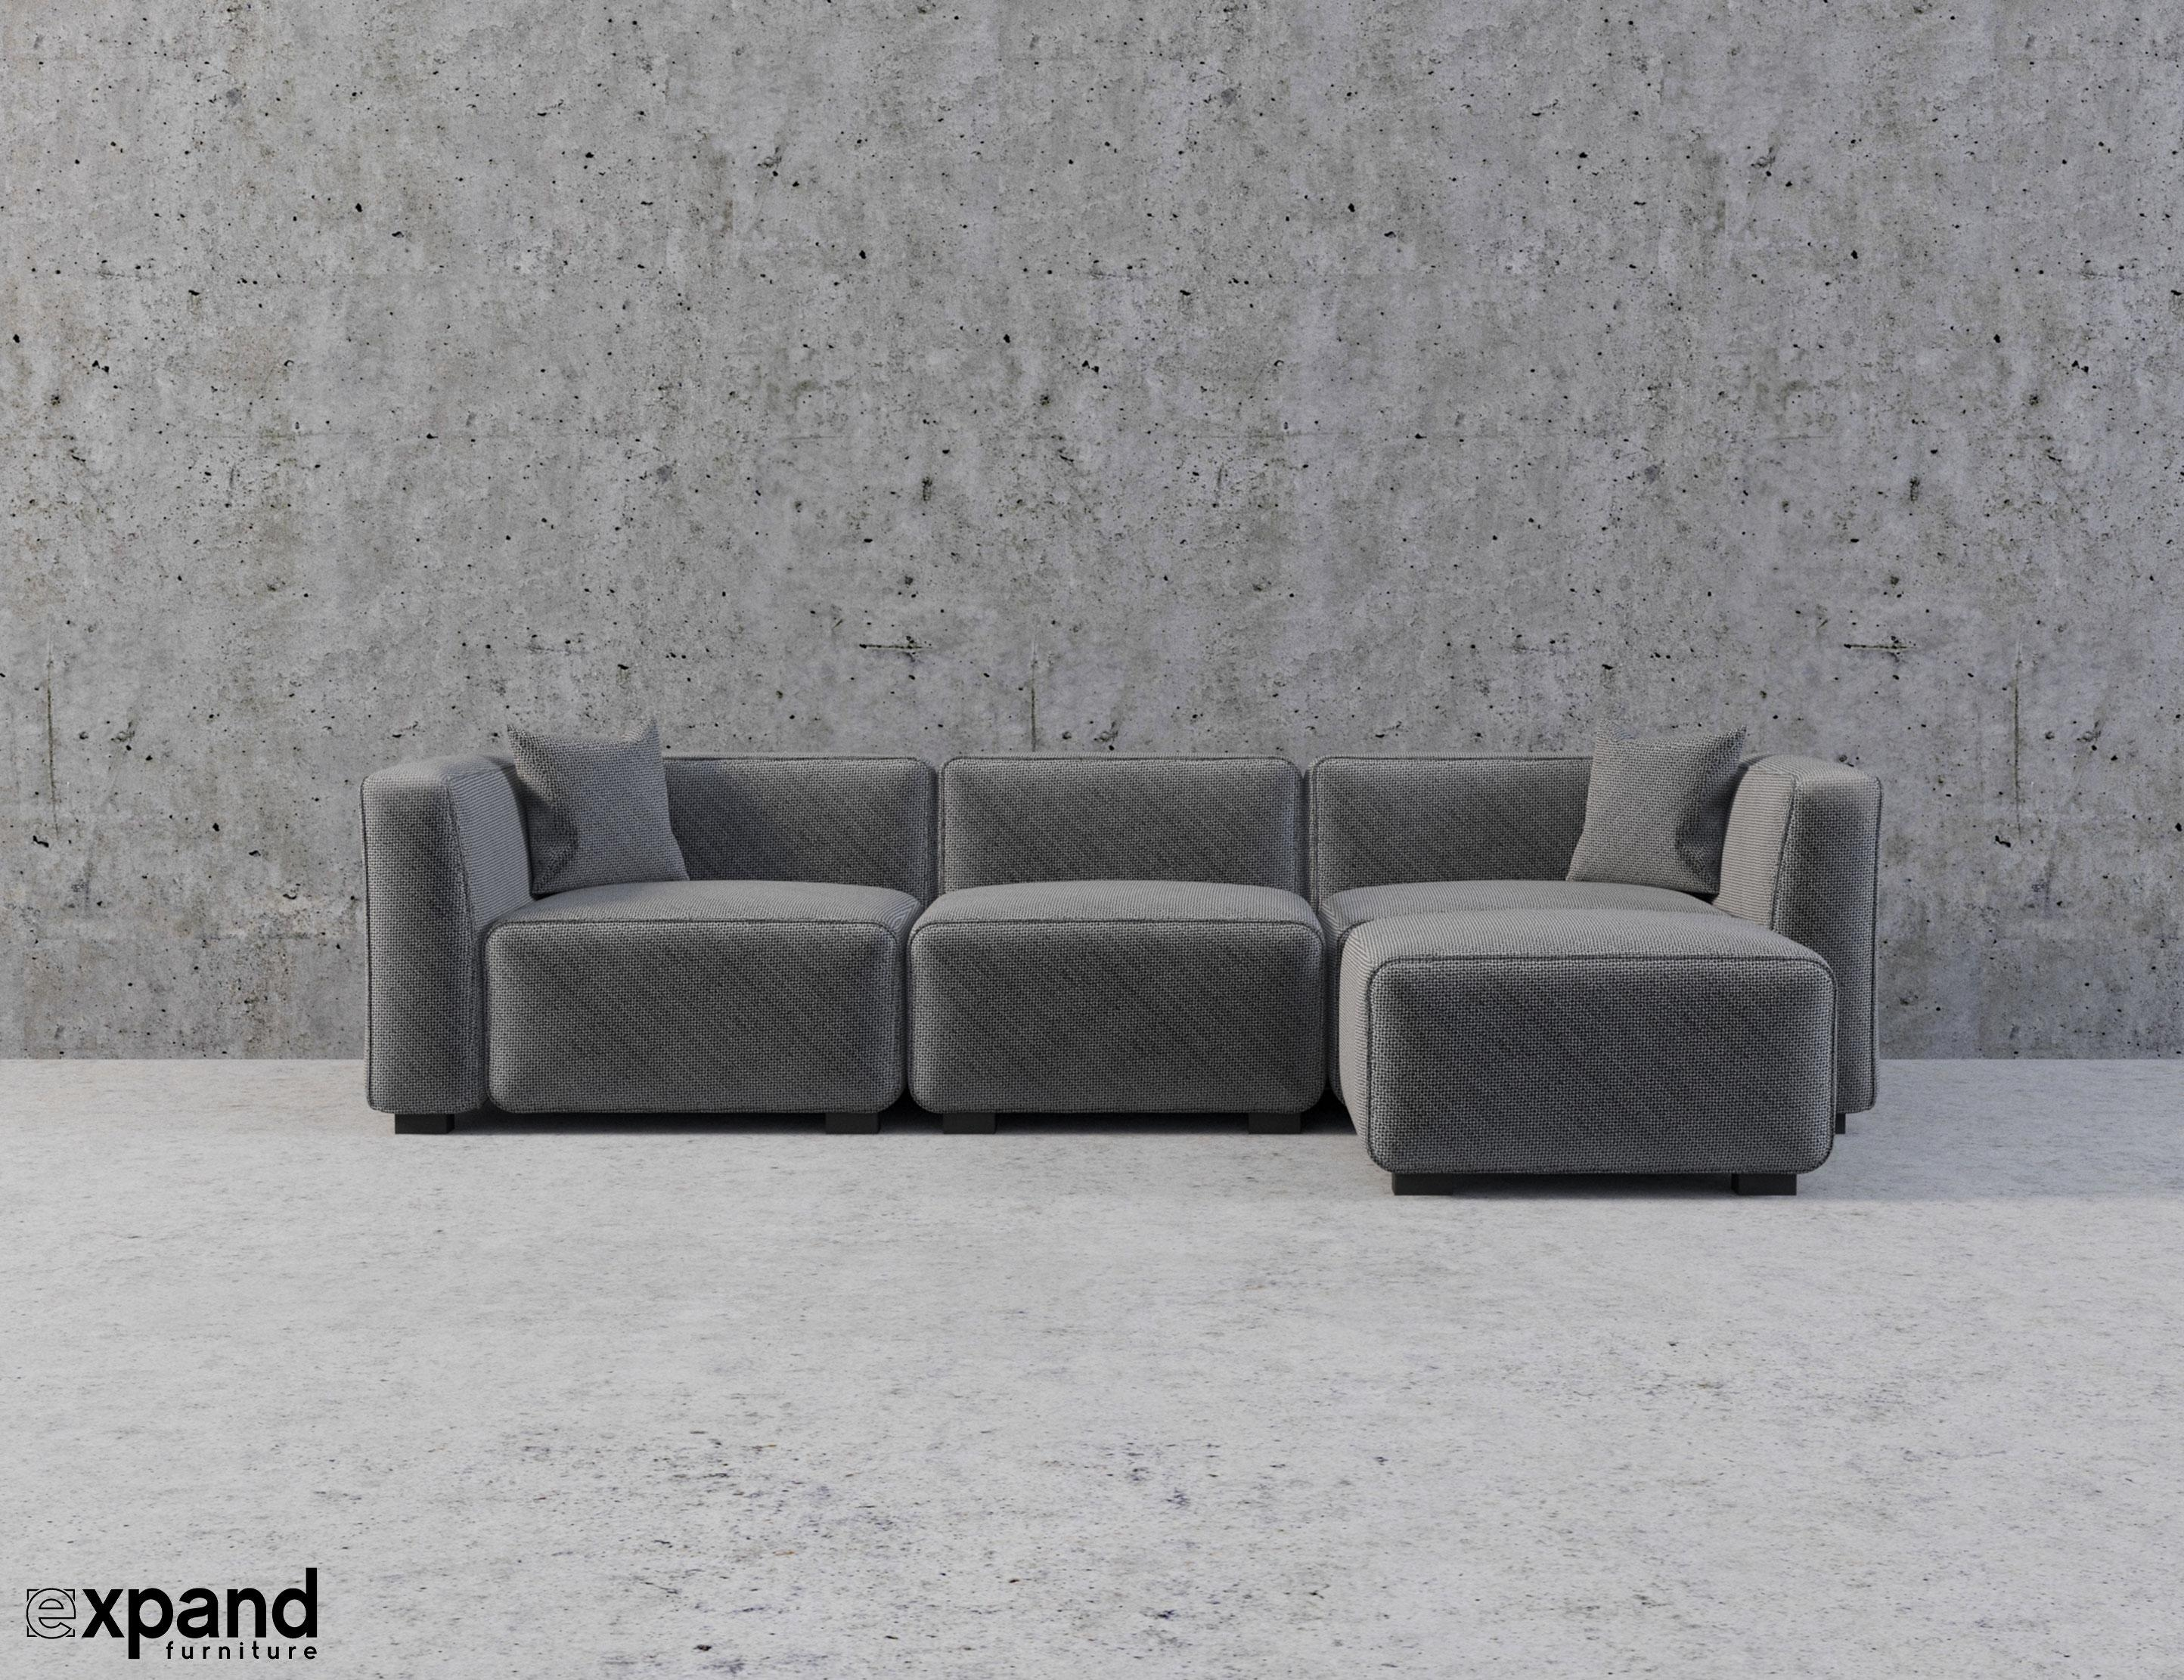 Soft Cube: Modern Modular Sofa Set | Expand Furniture – Folding Intended For Soft Sectional Sofas (View 20 of 20)